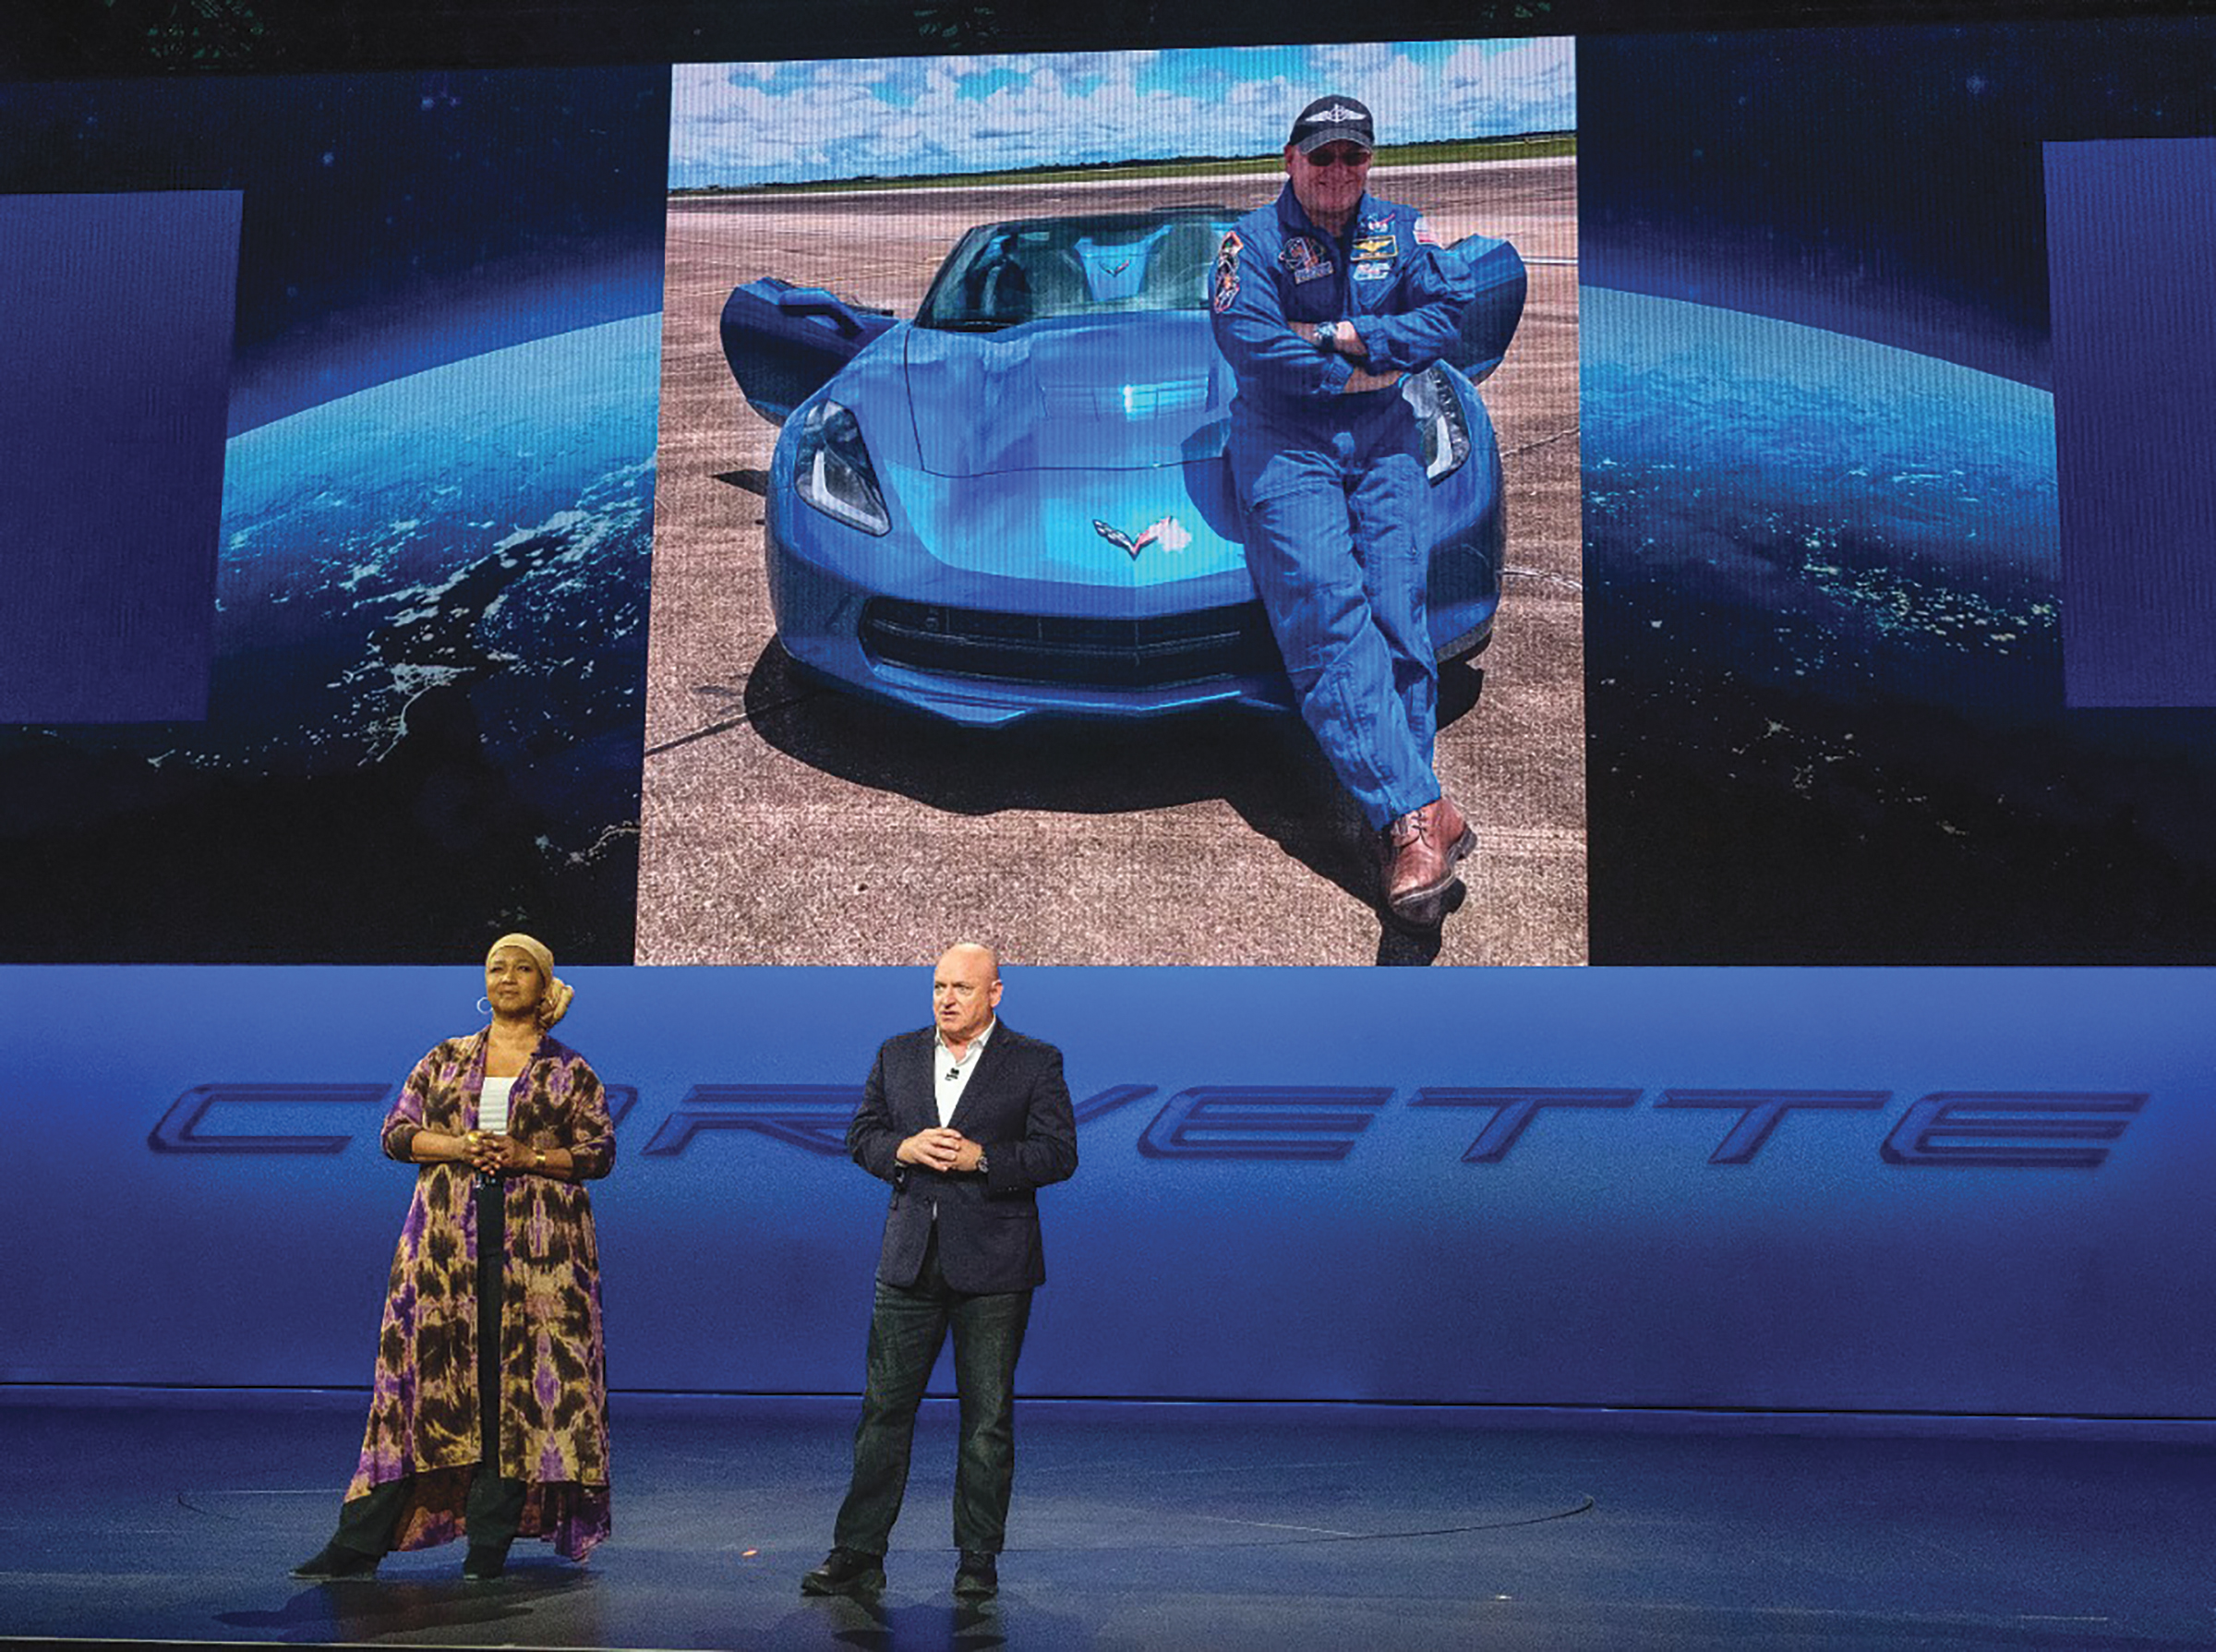 Former astronauts Dr. Mae Jemison and Capt. Scott Kelly address the gathering before the introduction of the 2020 Chevrolet Corvette Stingray Thursday, July 18, 2019 in Tustin, California. The 2020 Stingray, the brand's first-ever production mid-engine Corvette, features a new 6.2L Small Block V-8 LT2 engine producing 495 horsepower and 470 lb-ft of torque when equipped with performance exhaust. The 2020 Chevrolet Corvette Stingray goes into production in late 2019 and will start under $60,000. (Photo by Steve Fecht for Chevrolet)